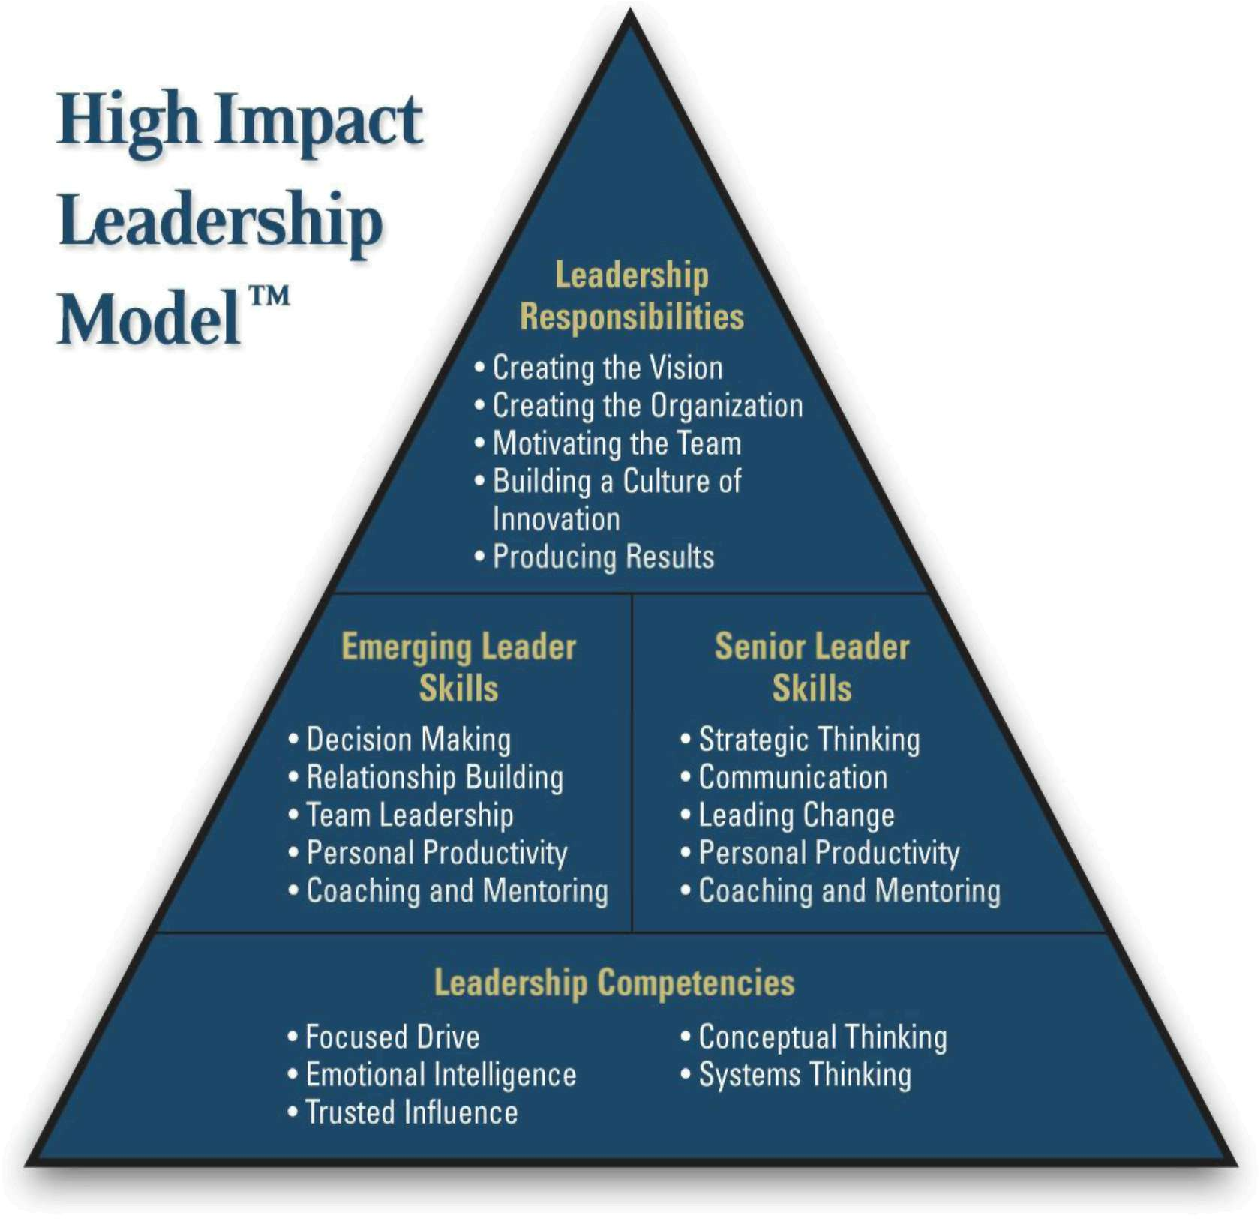 leadership models essay Comparing and contrasting four leadership models and theories essay sample the following paper outlines the comparison and contrast of four leadership models and theories the purpose of this paper is to acquaint readers with the basic concepts underlying each model and theory.